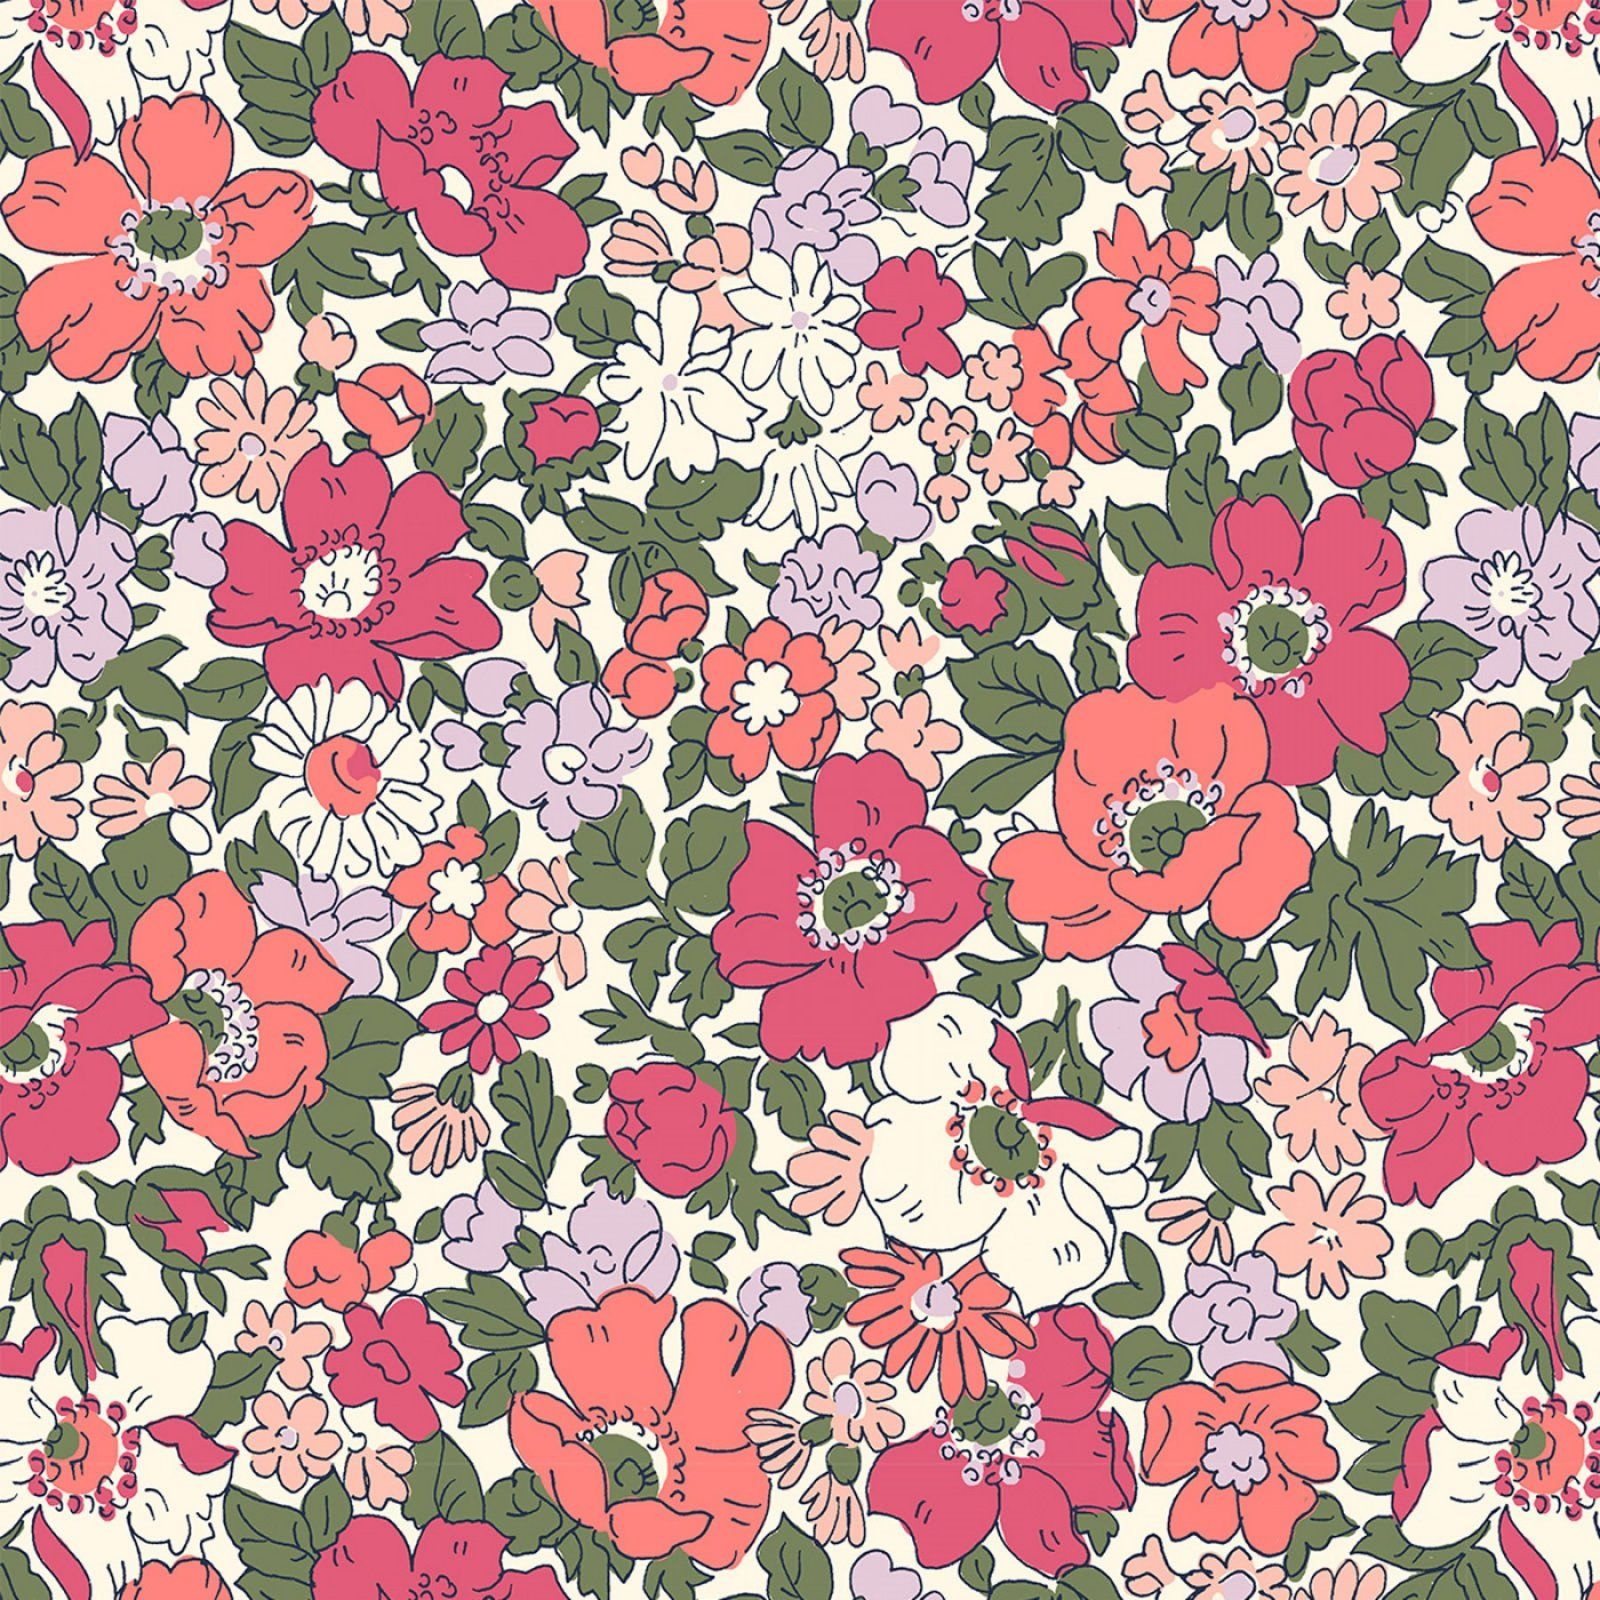 Liberty Of London The Cottage Garden Cosmos Meadow Annual Liberty Of London Fabric Liberty Of London Cotton Quilting Fabric